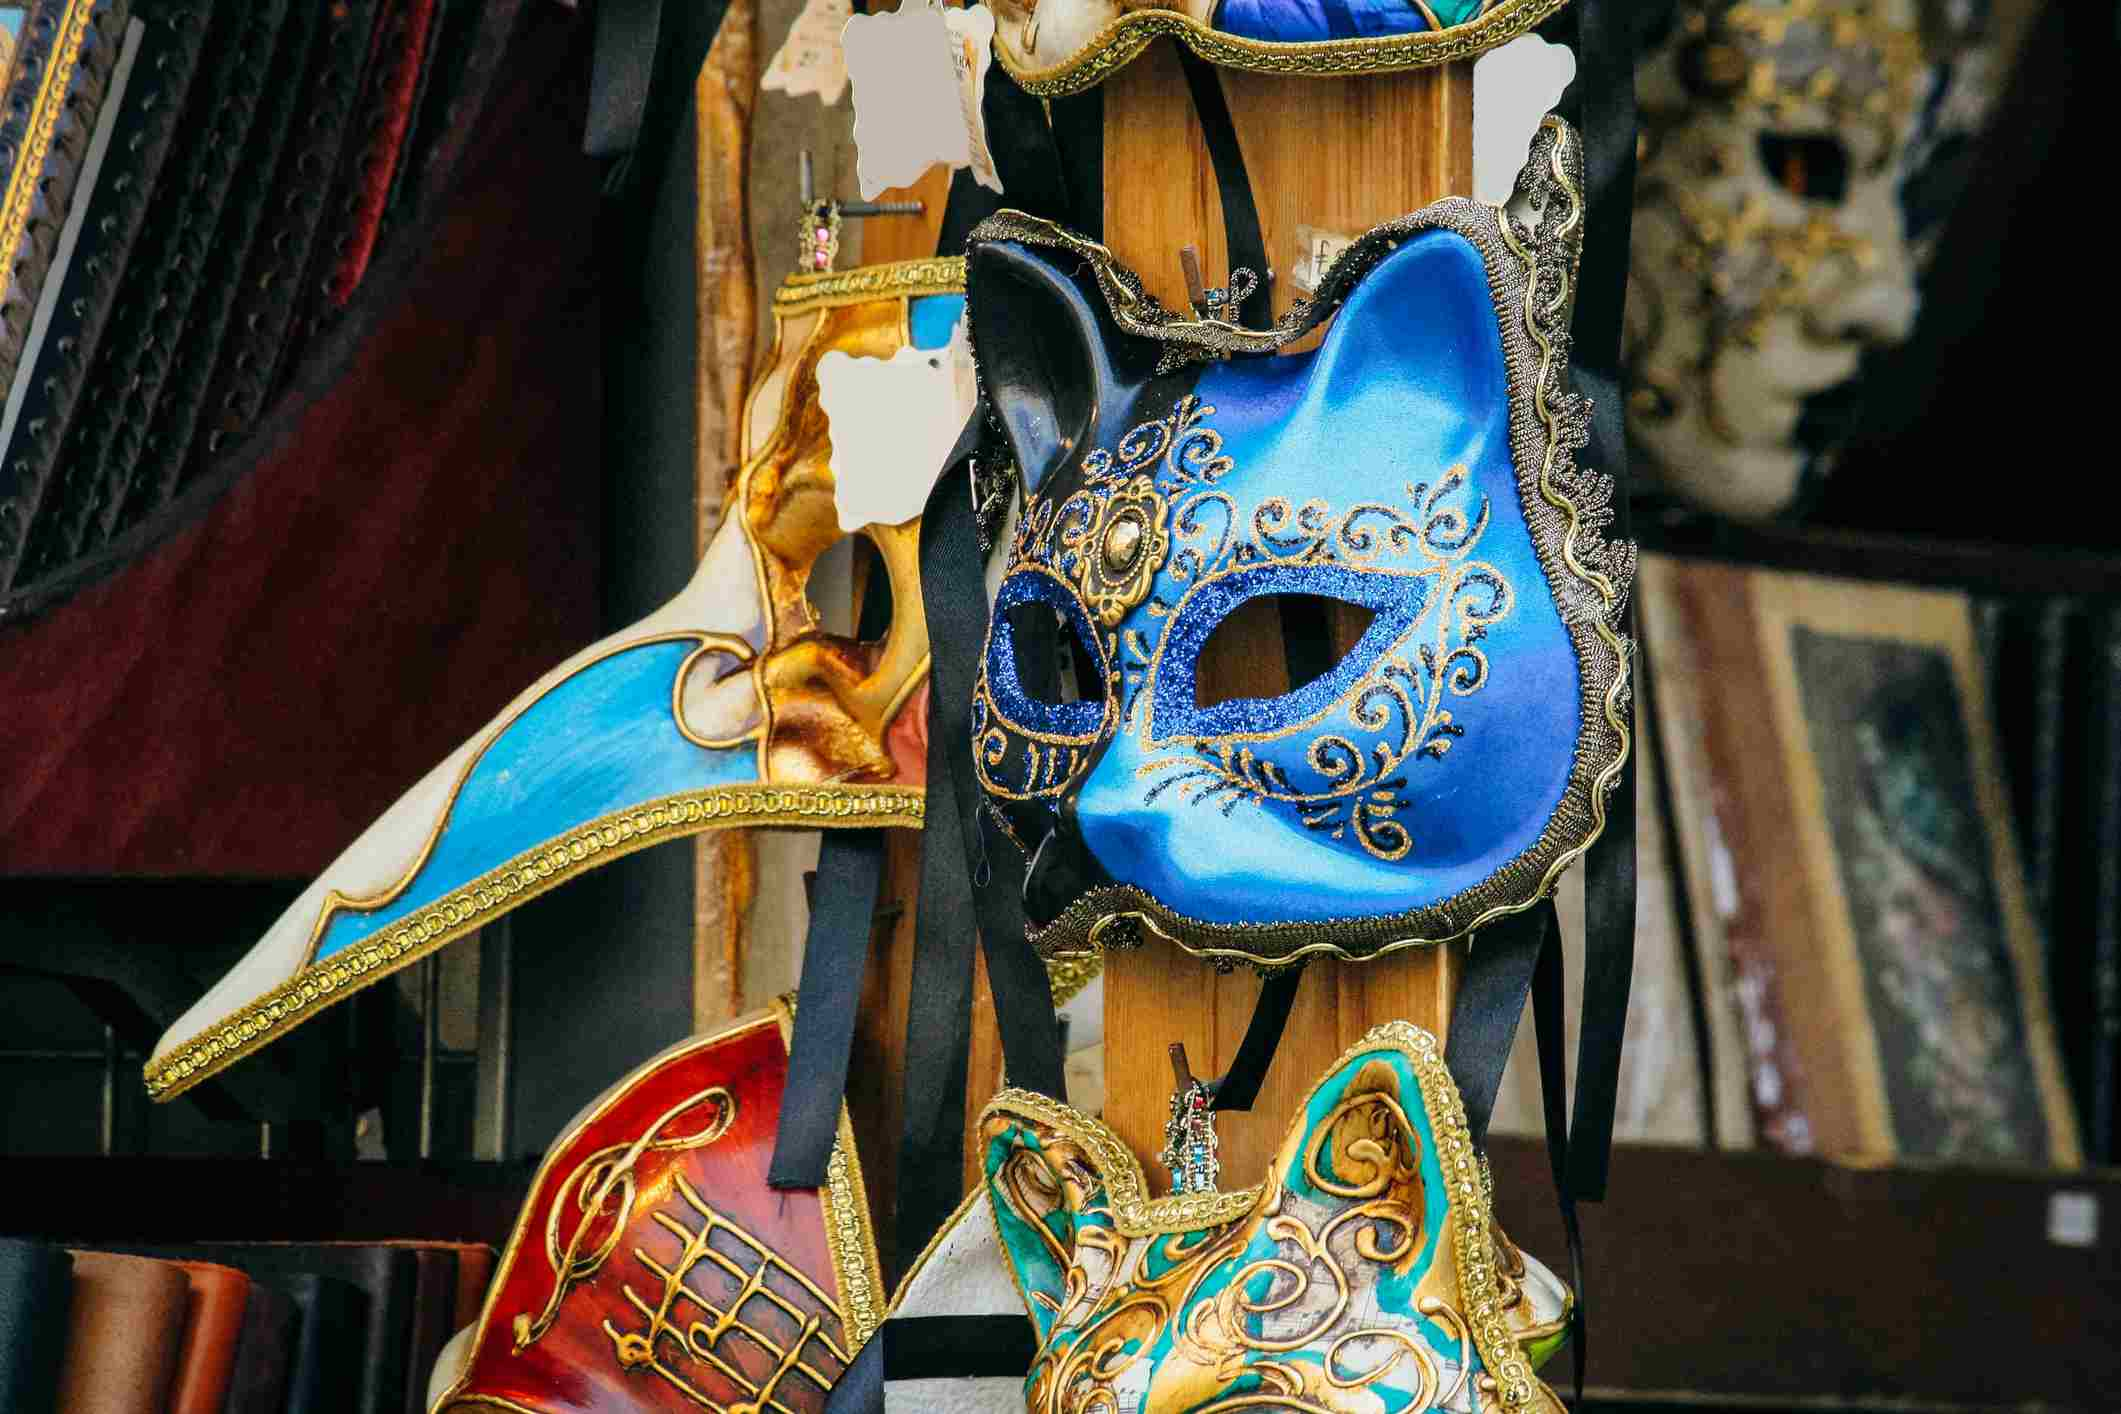 carnival masks for sale, Florence, Tuscany, Italy.